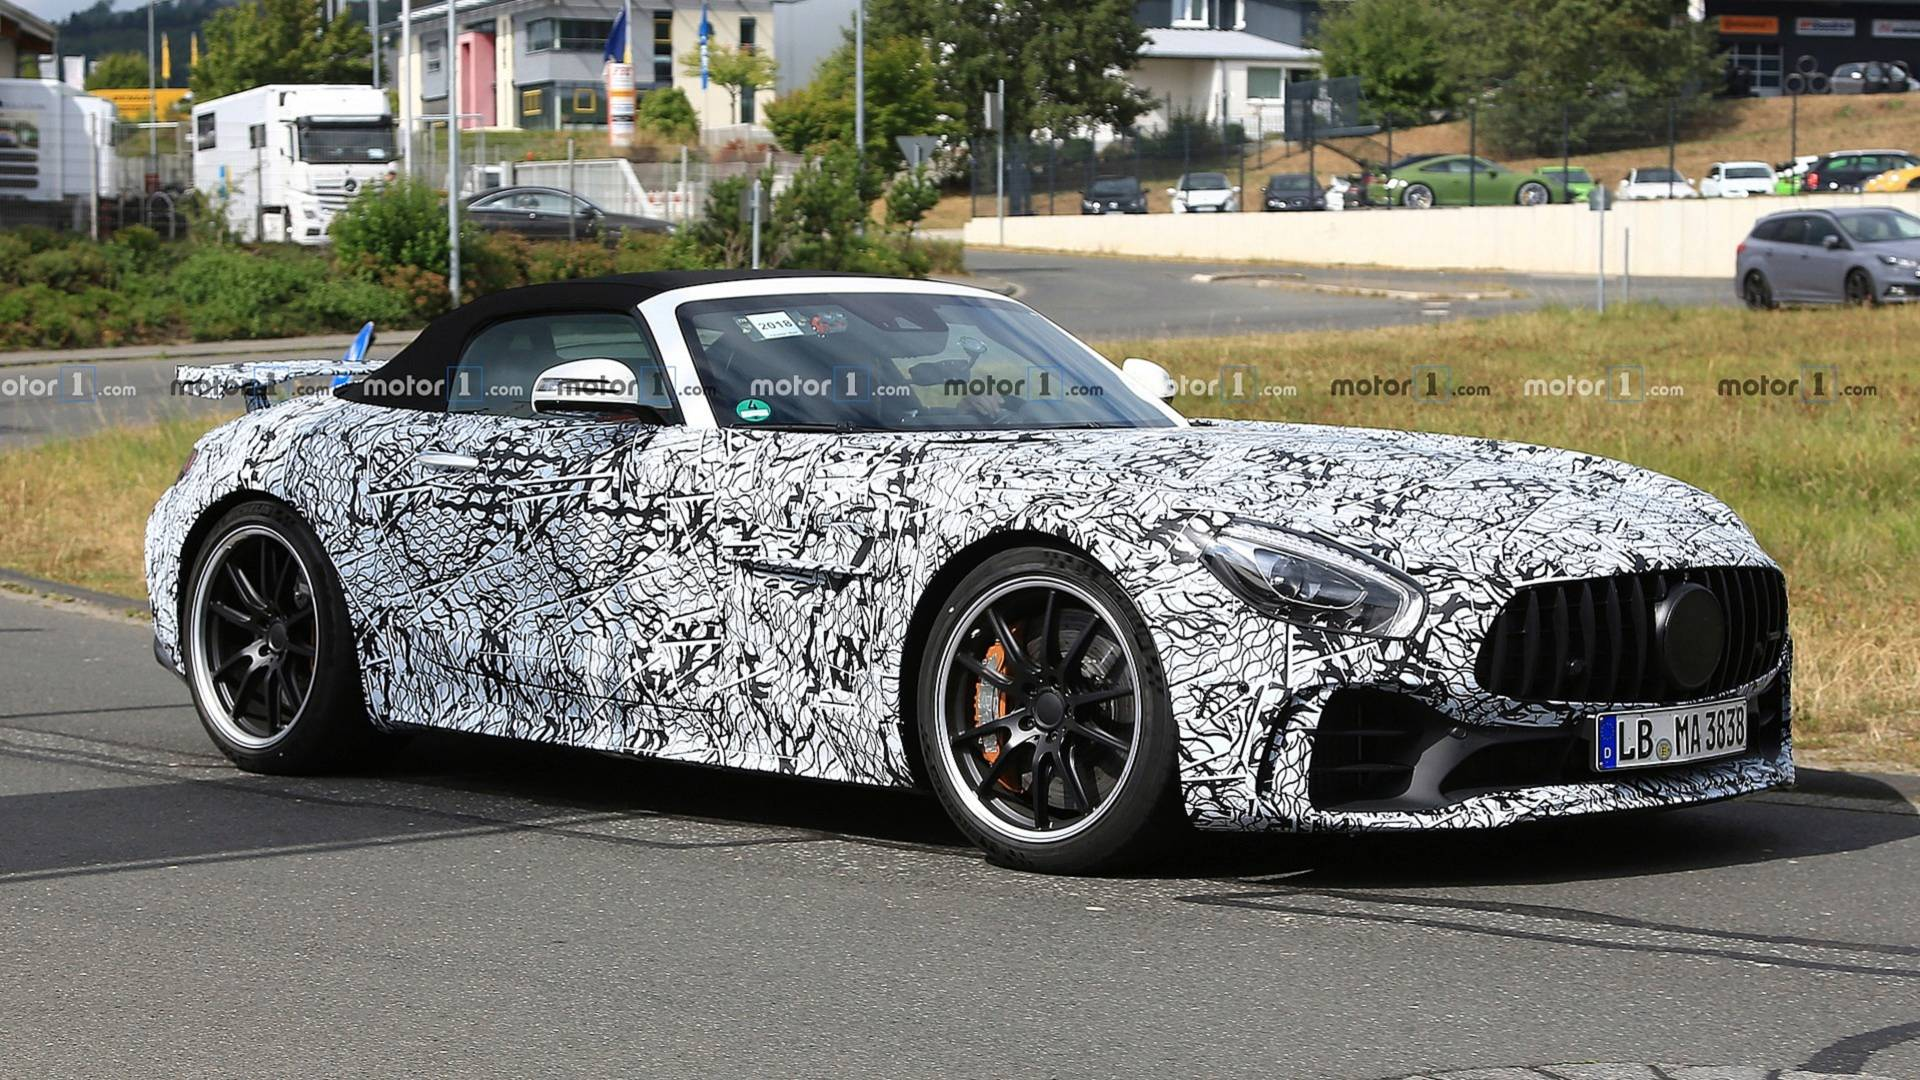 Mercedes-AMG GT R Roadster Indirectly Confirmed With 577 HP